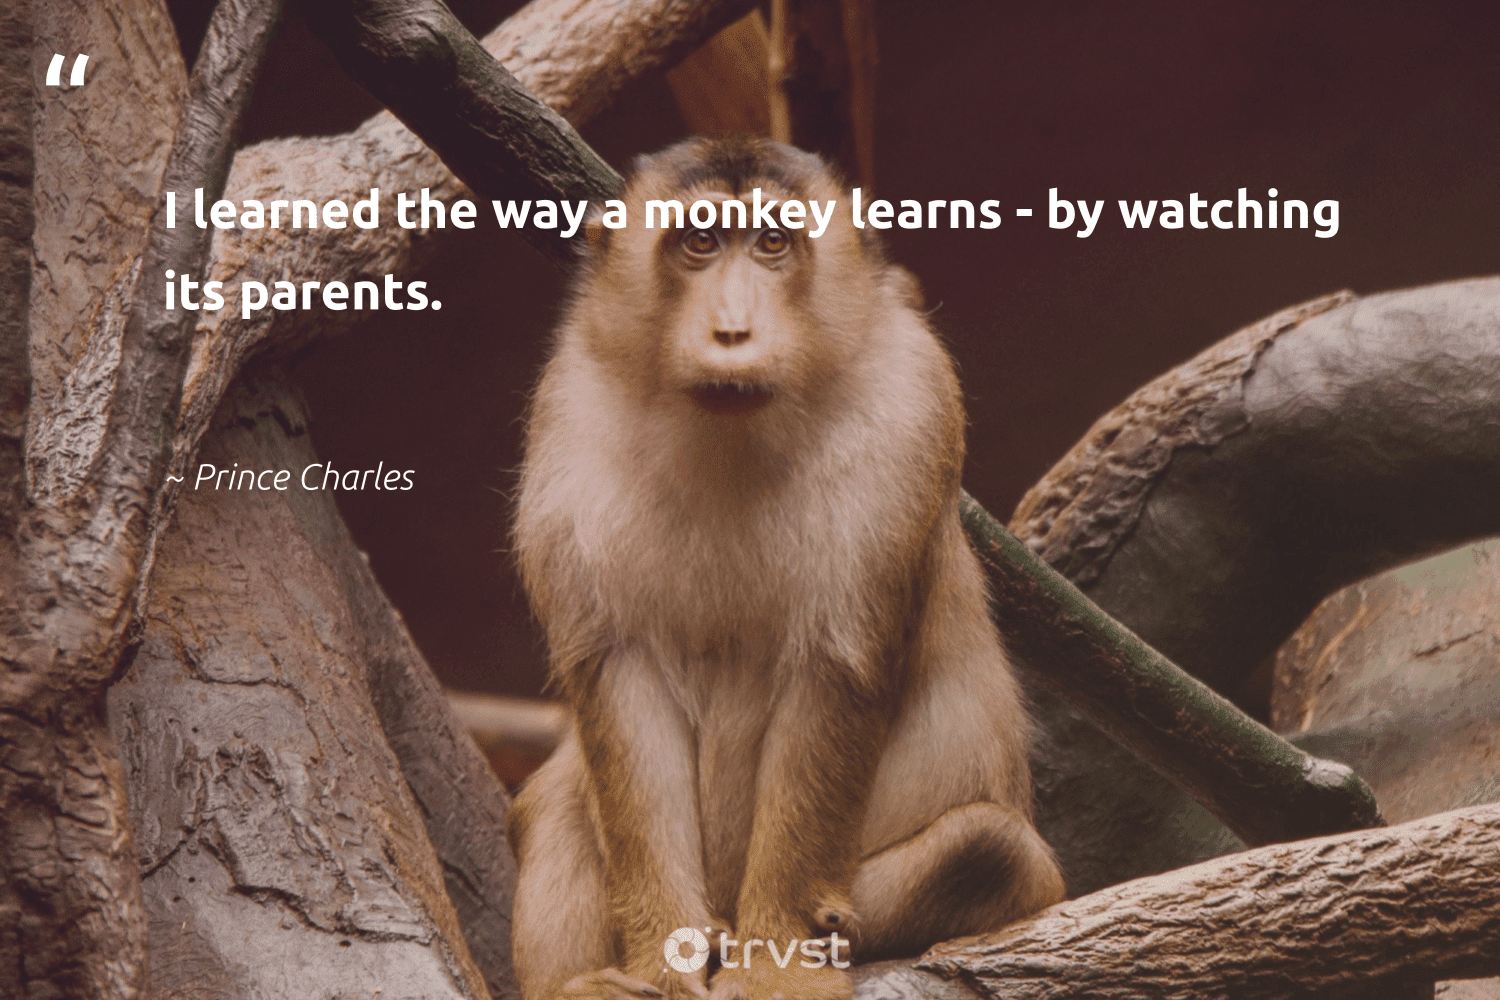 """""""I learned the way a monkey learns - by watching its parents.""""  - Prince Charles #trvst #quotes #monkey #sustainability #dotherightthing #majesticwildlife #socialchange #monkeys #changetheworld #splendidanimals #beinspired #conservation"""